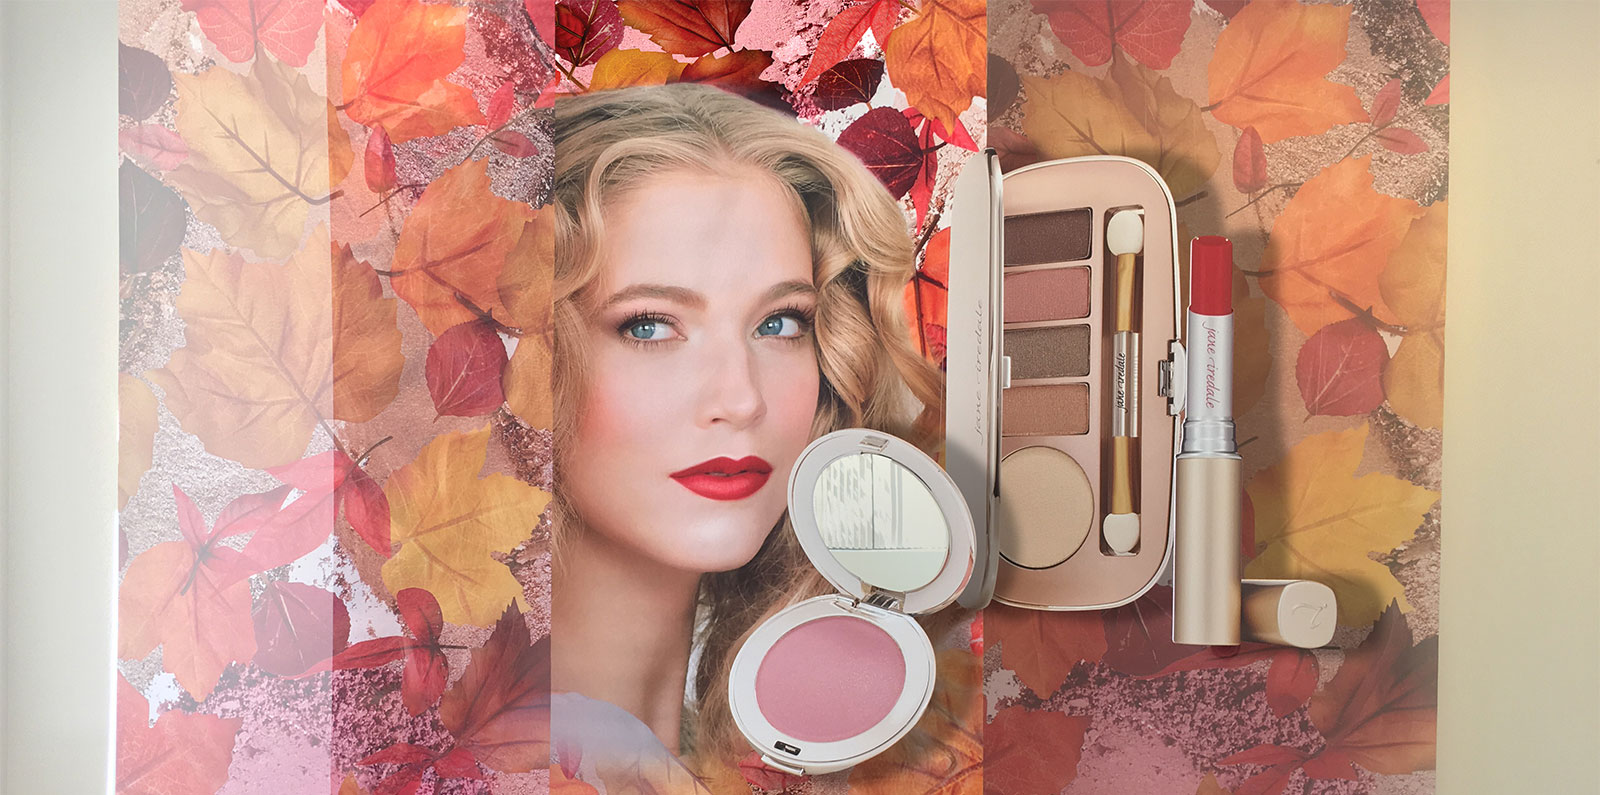 a womans face surrounded by pink leaves and various cosmetics